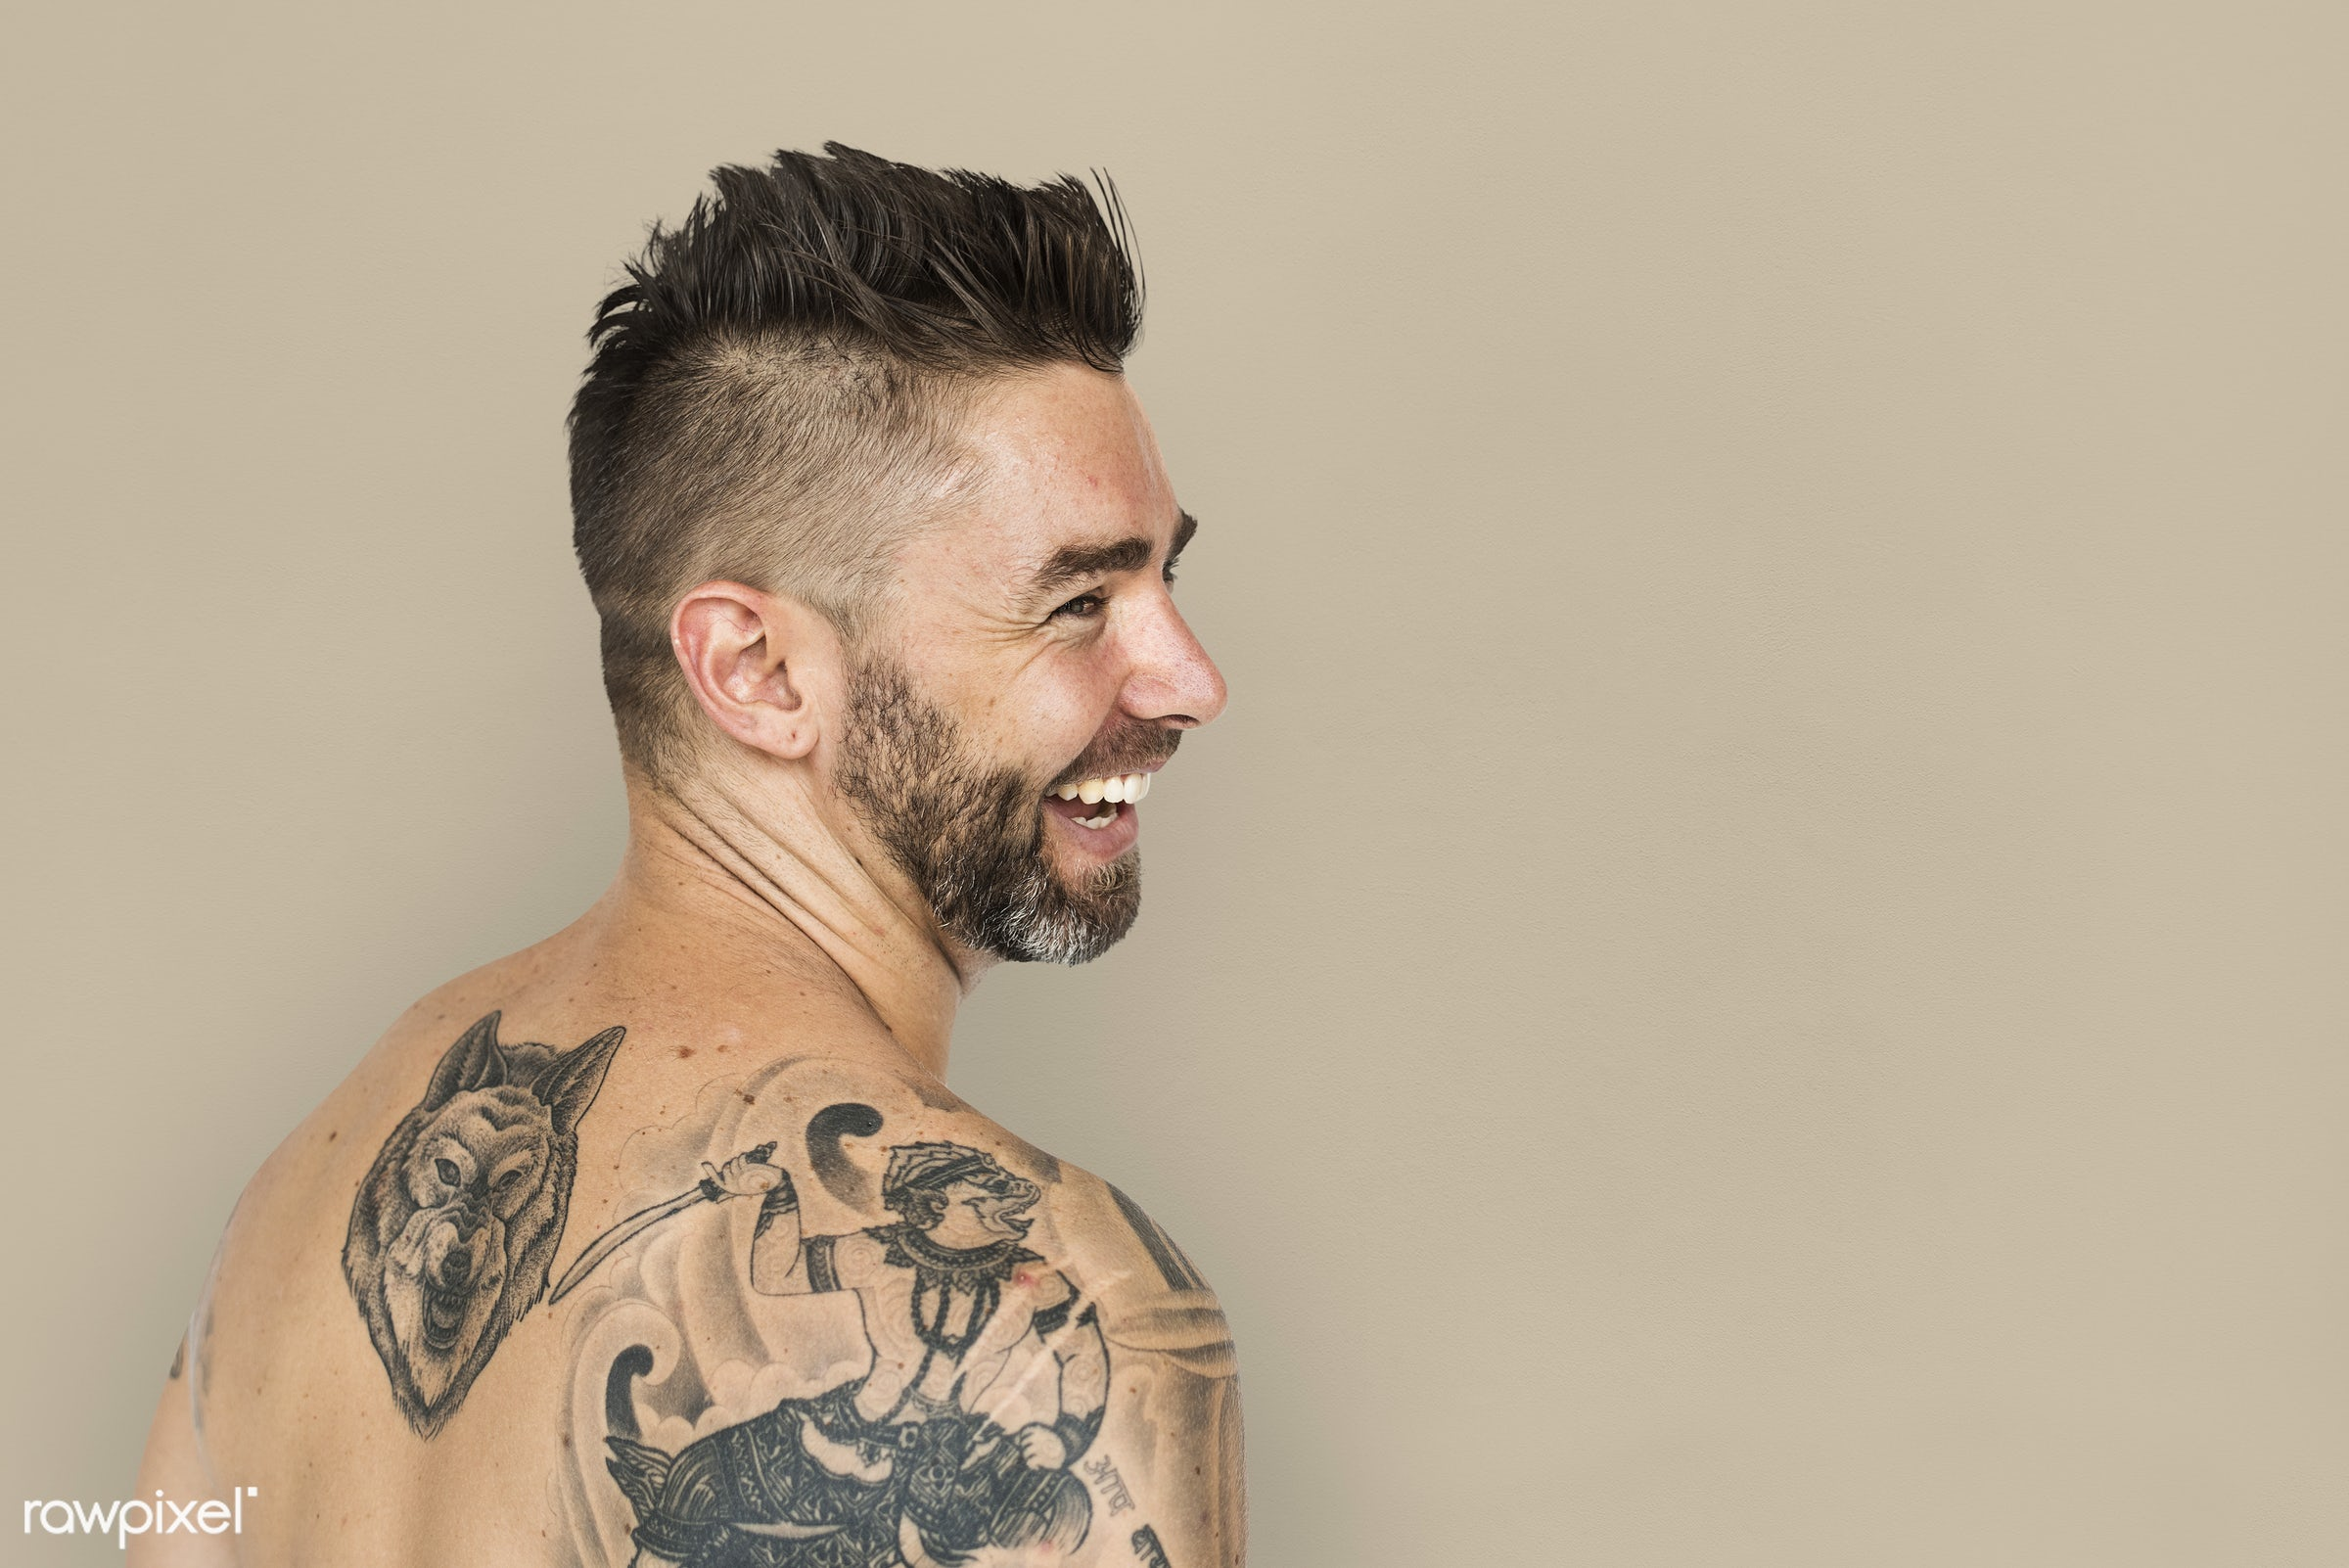 expression, studio, person, people, caucasian, bare chest, style, solo, happy, back shot, back view, smile, tattoo, positive...